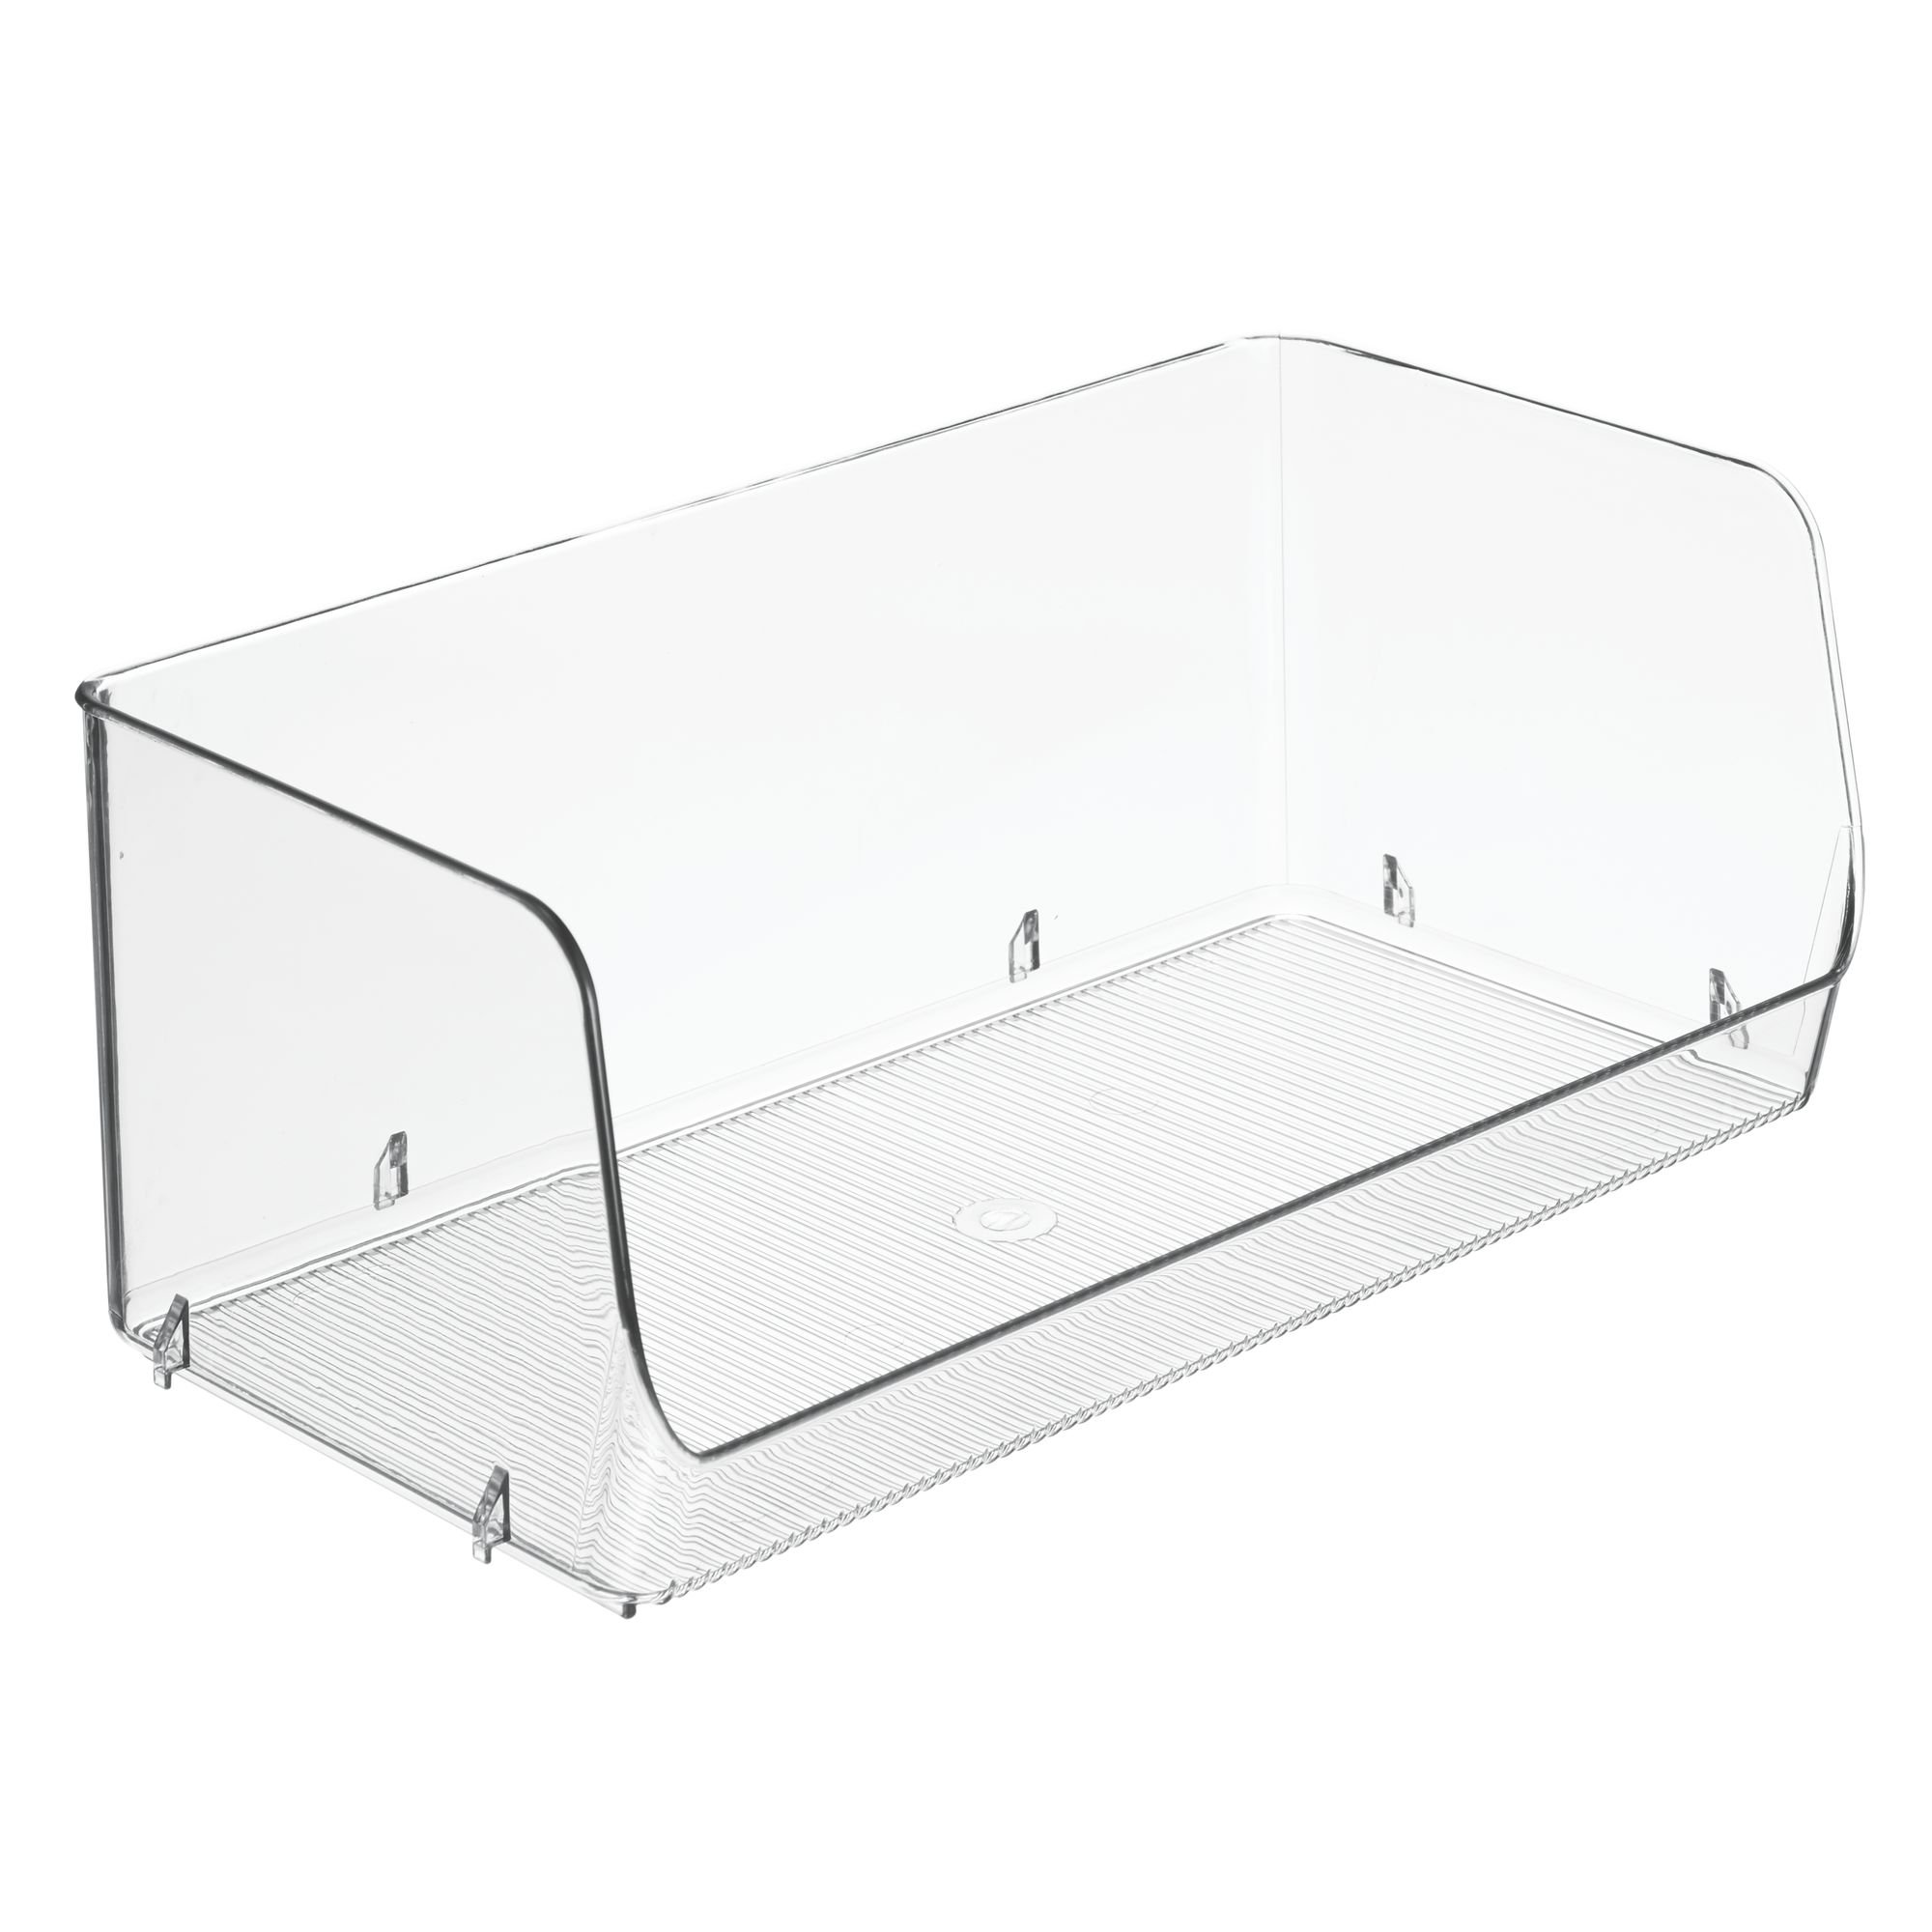 mDesign Household Stackable Plastic Storage Organizer Bin Basket with Open Front for Kitchen Cabinets, Pantry, Offices, Closets, Bedrooms, Bathrooms - 12'' Wide, Pack of 6, Clear by mDesign (Image #8)